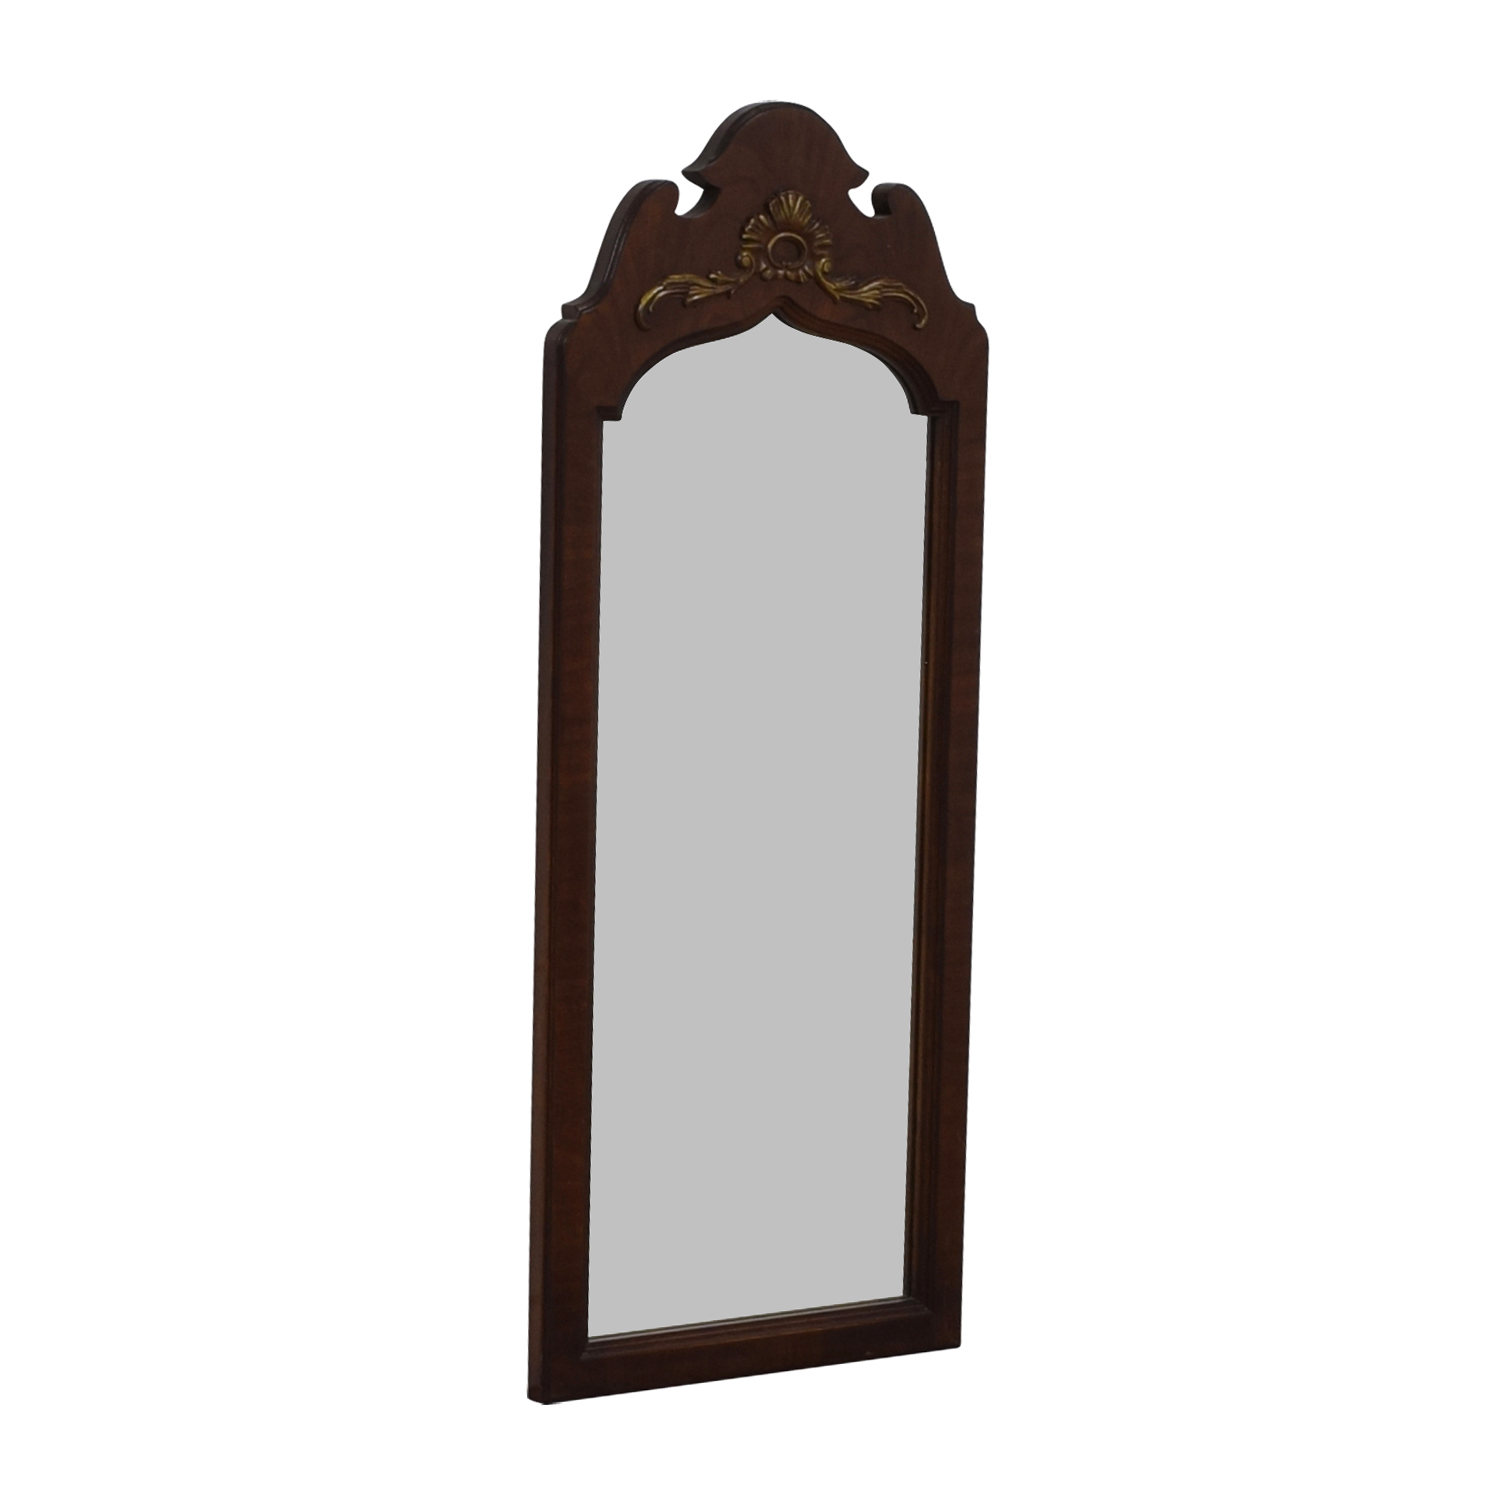 Thomasville Thomasville Cherry Wood Framed Mirror for sale